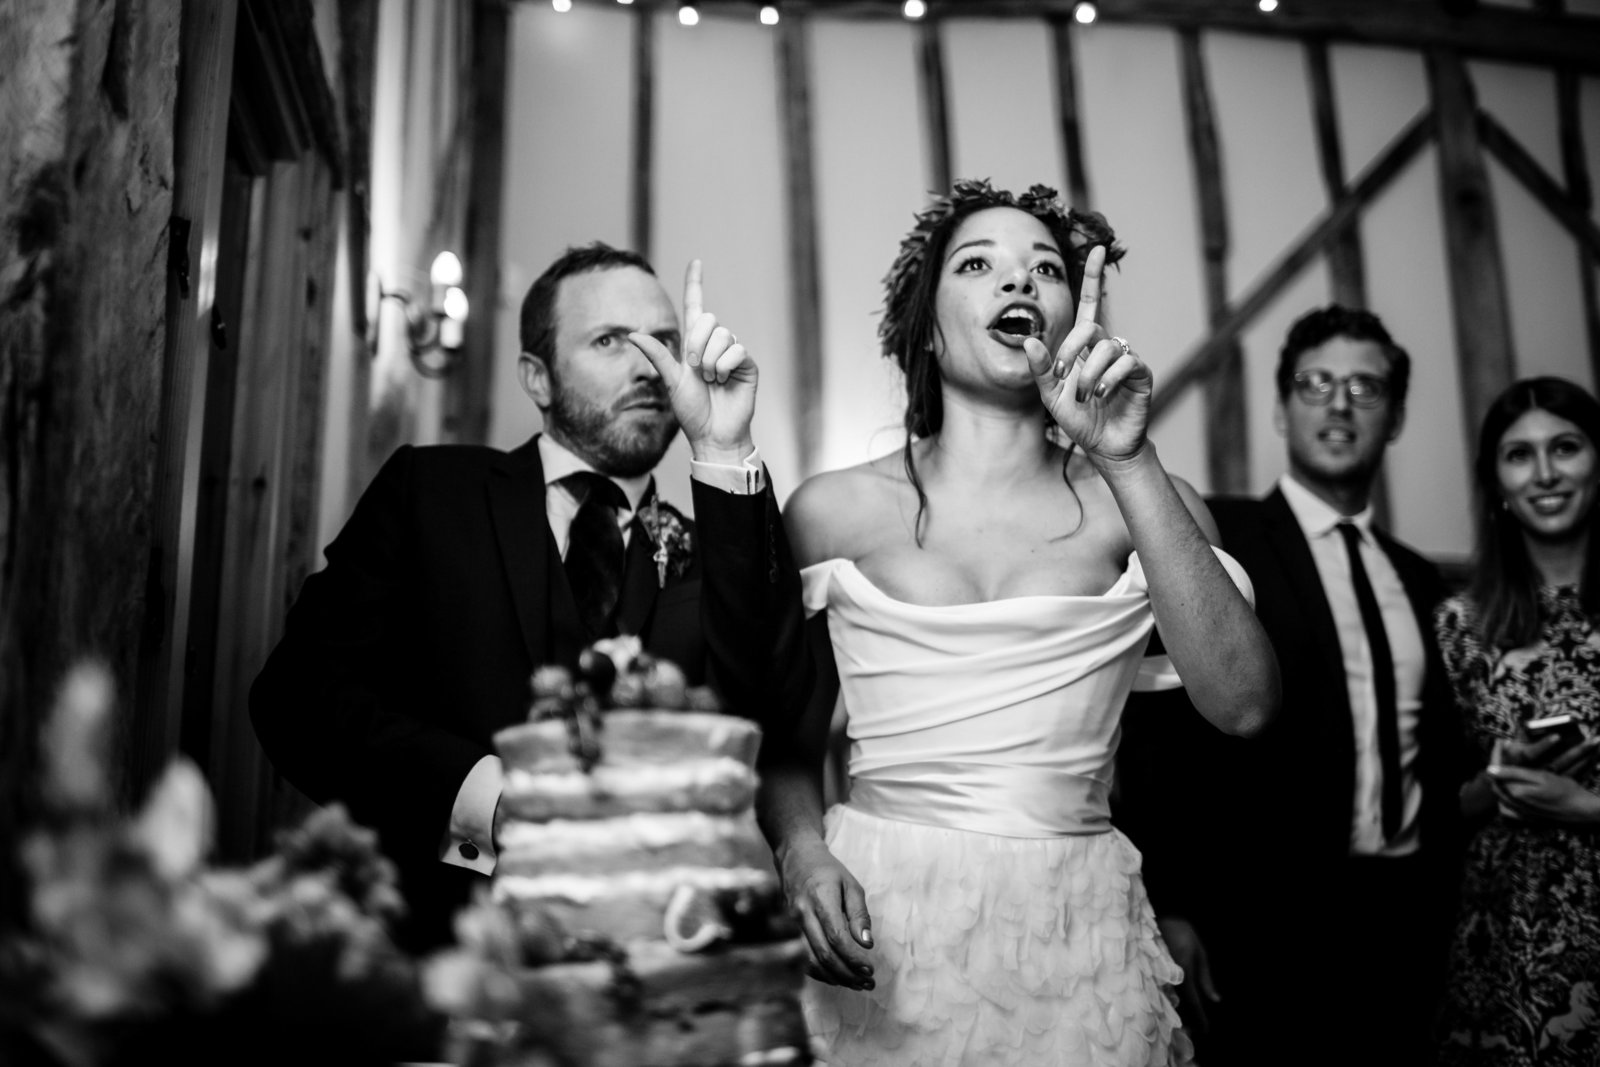 Bride and Groom cut their wedding cake whilst making the 'loser' sign at a guest and smiling.